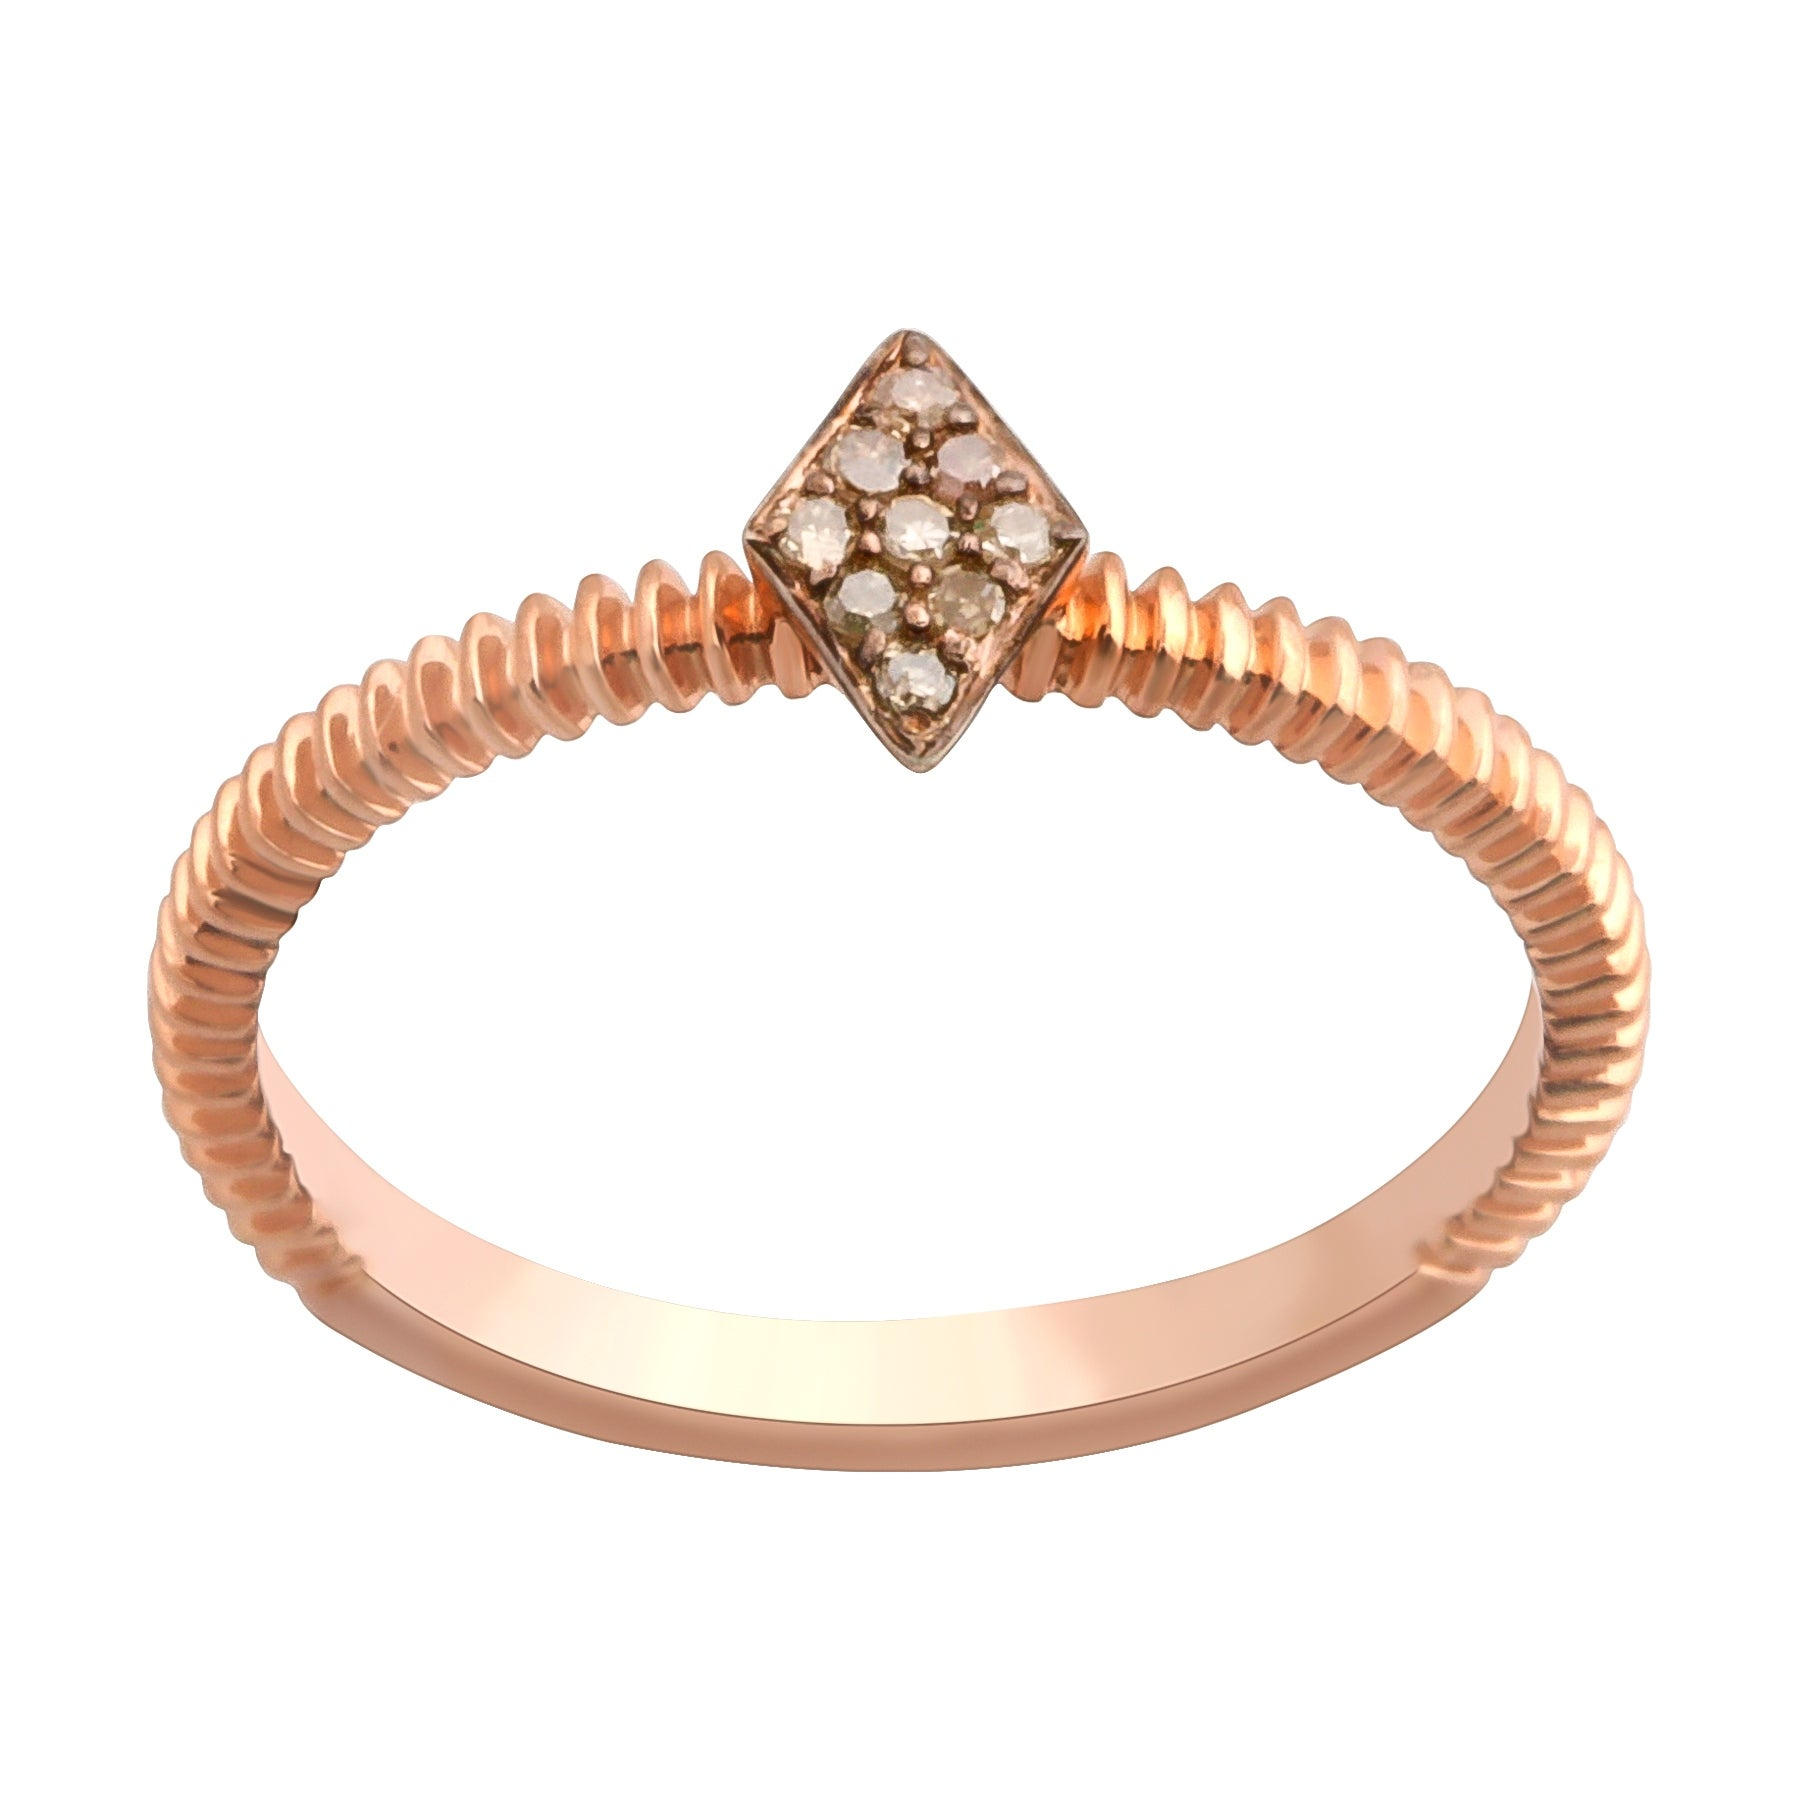 Prism Jewel 0.06Ct Round Brown Diamond Stylist Ring - Thumbnail 0